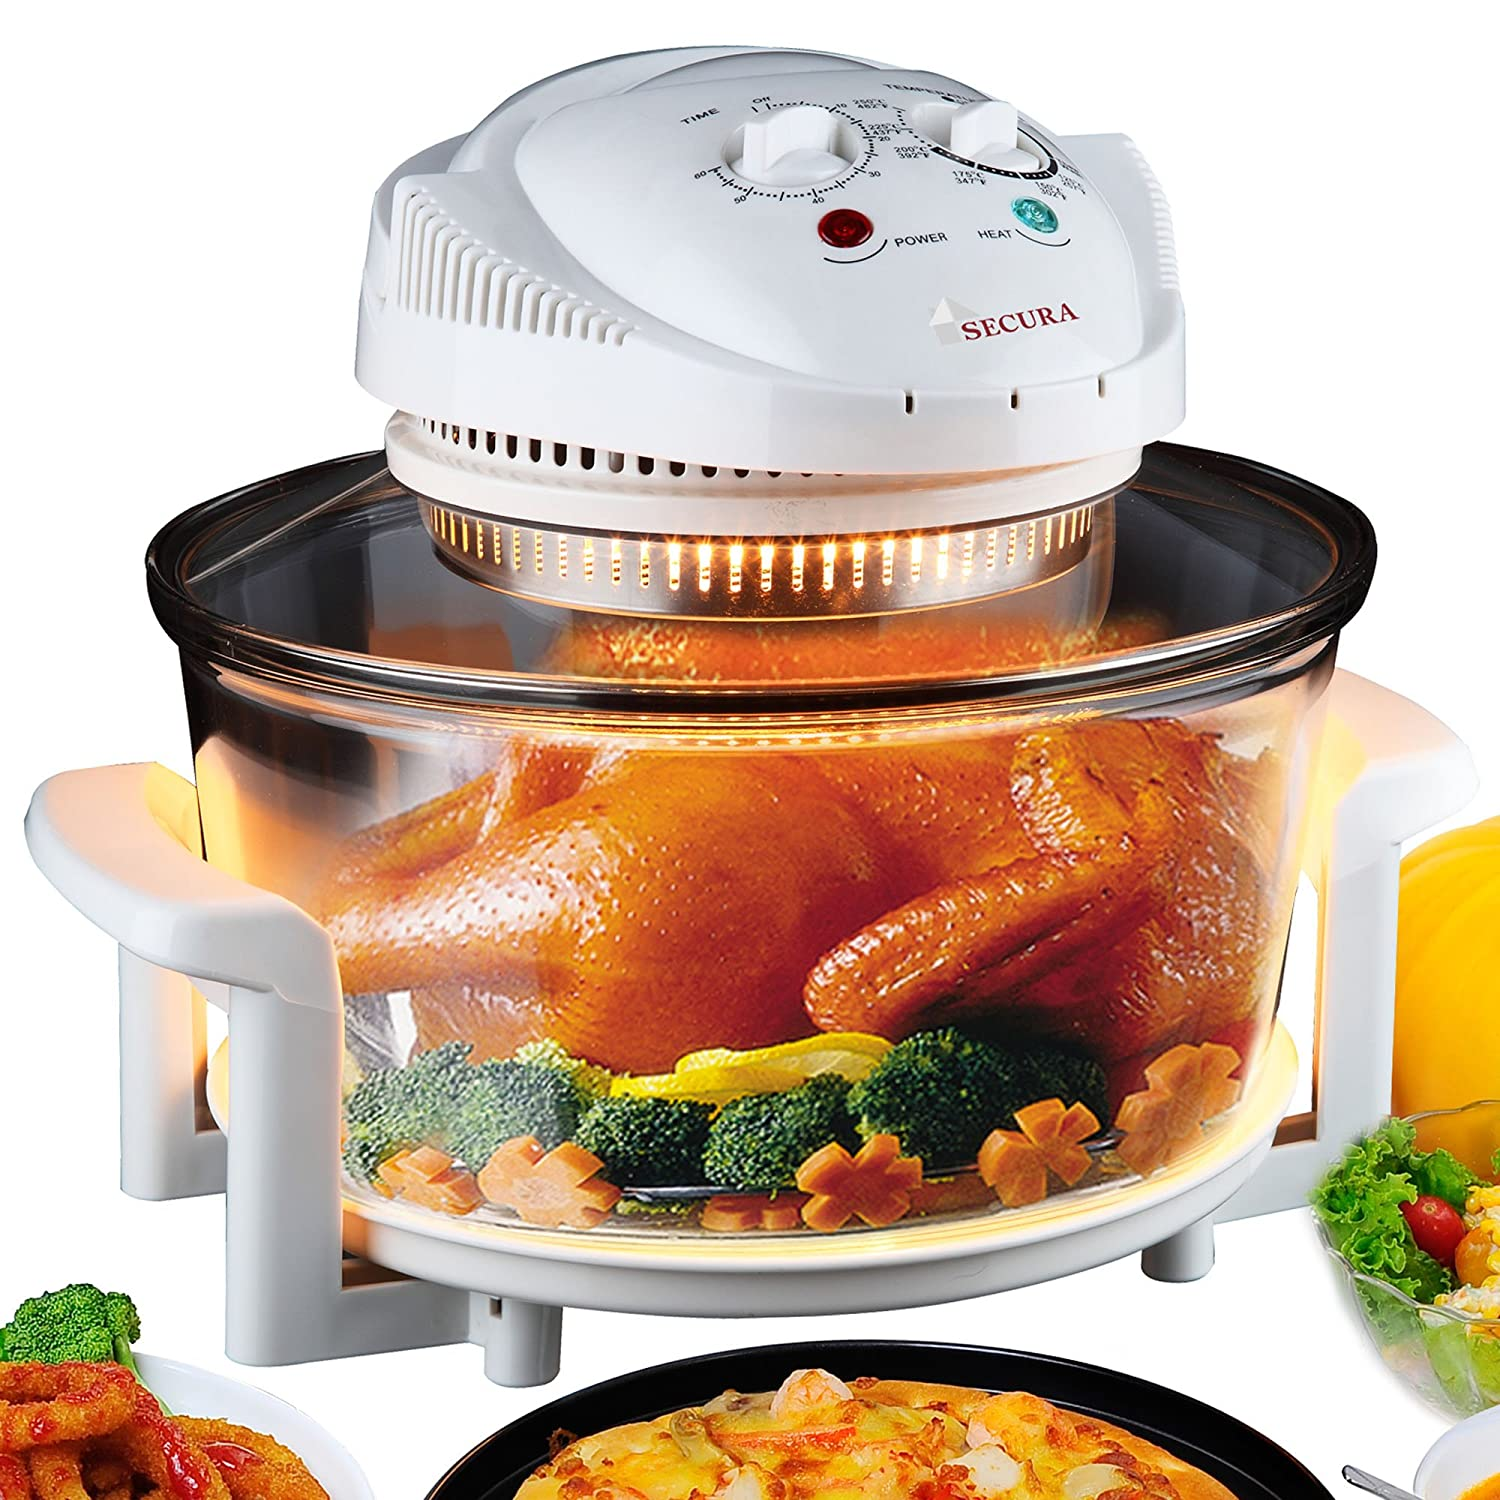 Countertop Halogen Convection Oven : Countertop Convection Oven Rotisserie Halogen Toaster Infrared Cooking ...